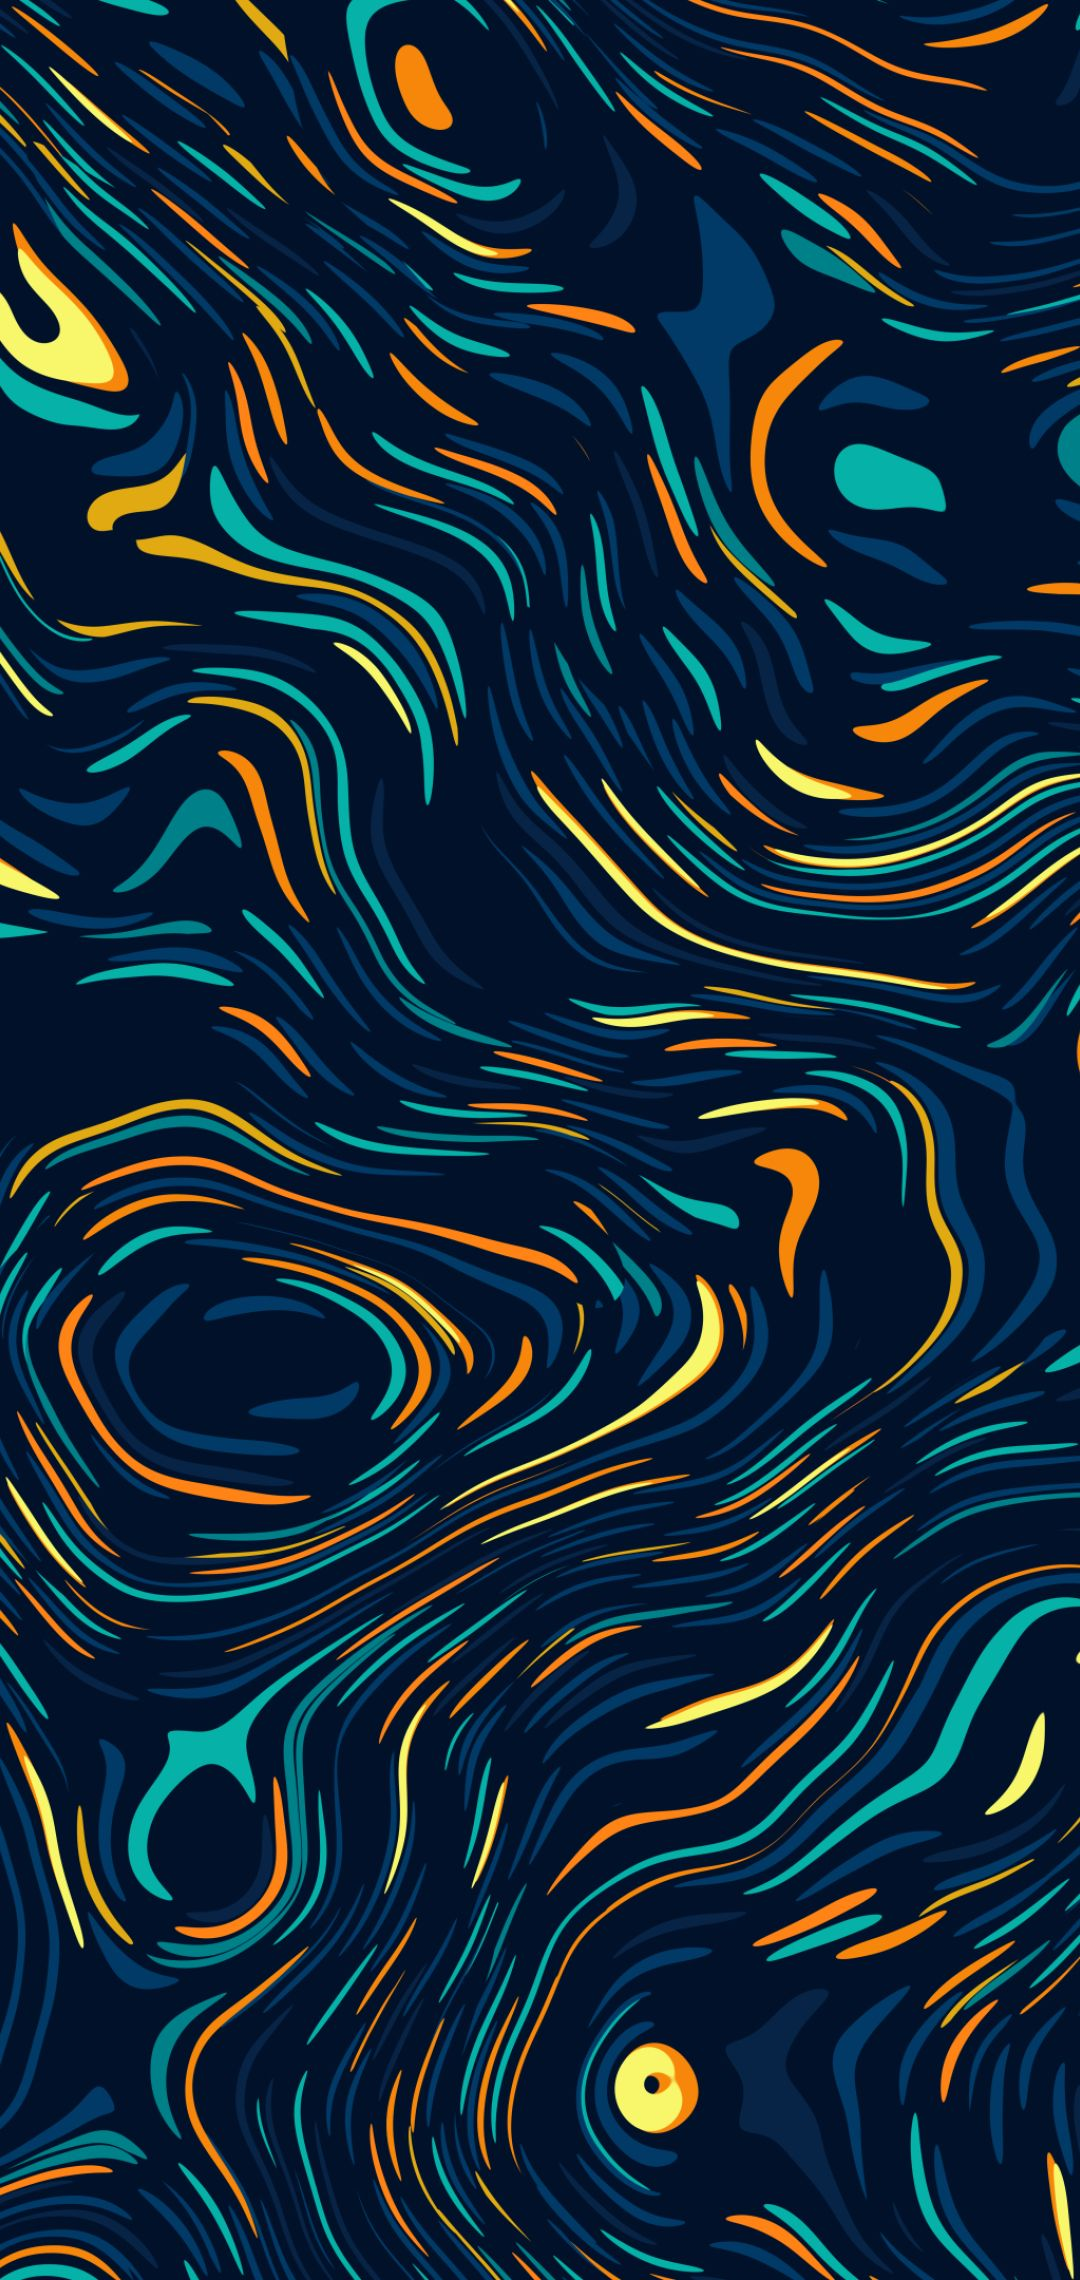 1080x2280 New Cool Swirl 4k Art One Plus 6 Huawei P20 Honor View 10 Vivo Y85 Oppo F7 Xiaomi Mi A2 Wallpaper Hd Artist 4k Wallpapers Images Photos And Backgro In 2021 Graffiti Wallpaper Iphone Abstract